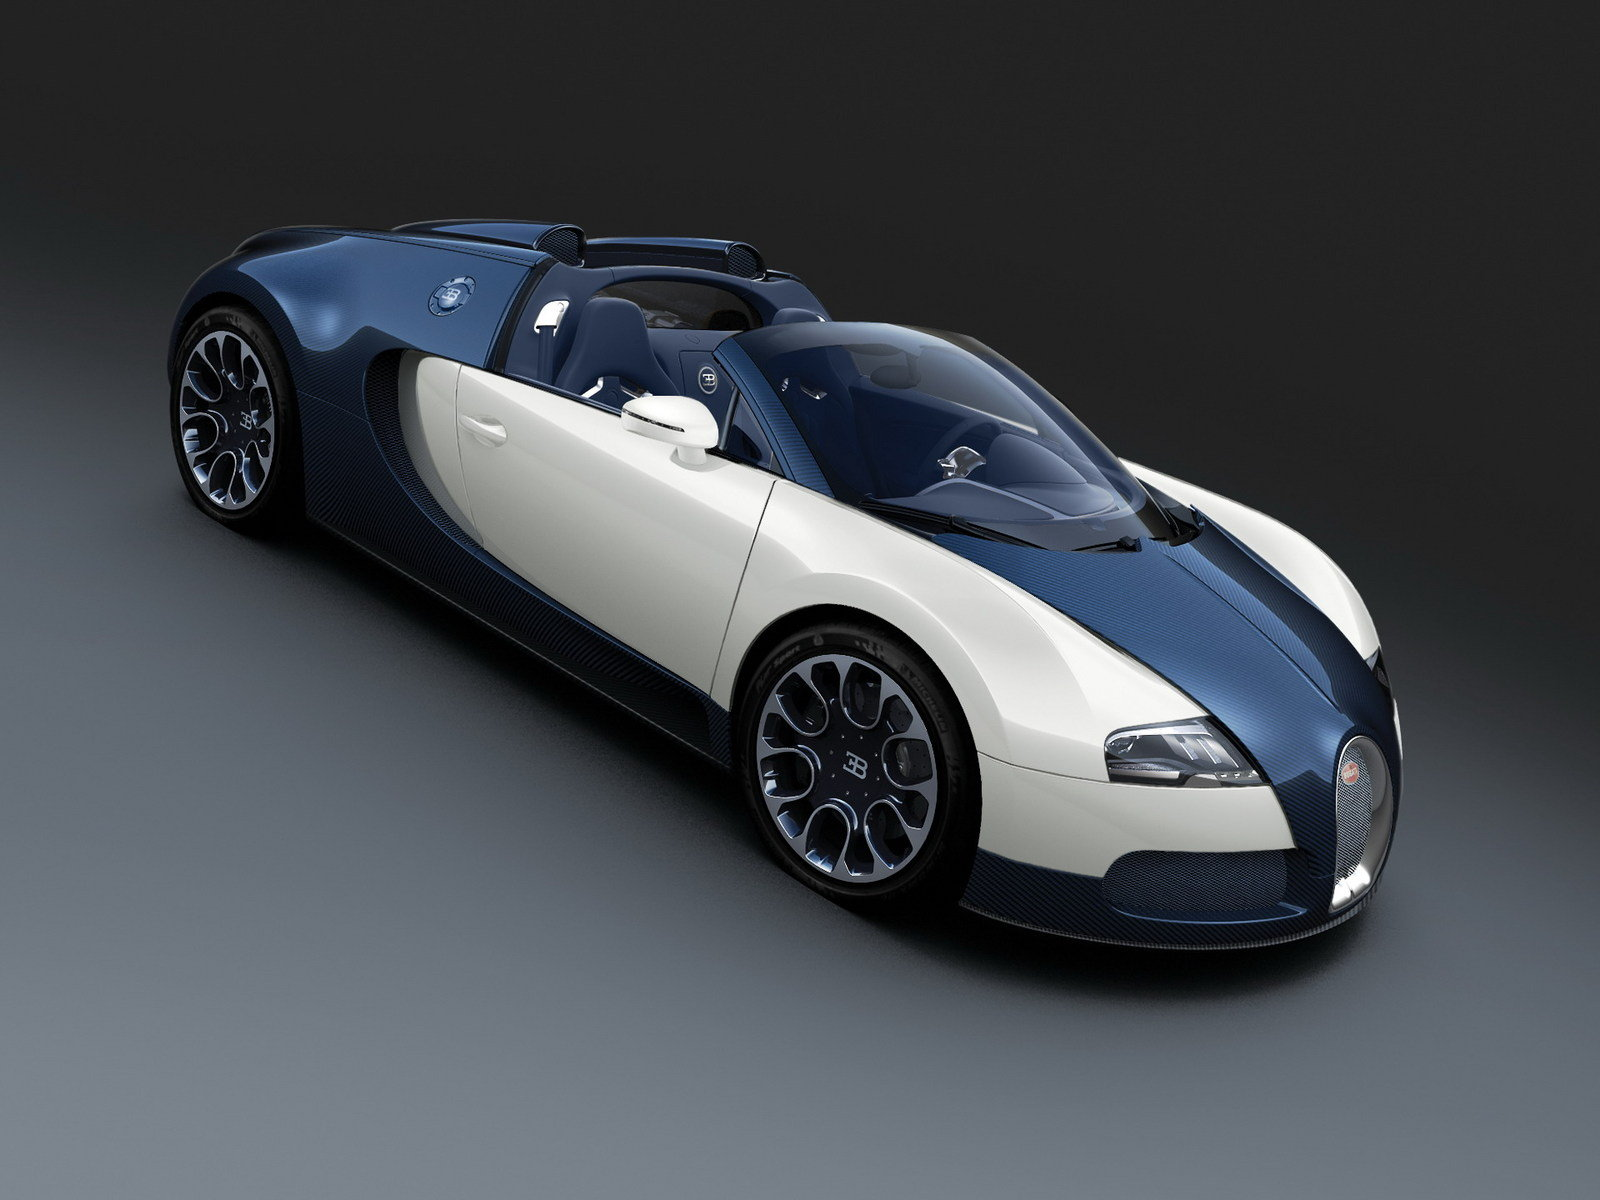 2010 bugatti veyron royal dark blue review top speed. Black Bedroom Furniture Sets. Home Design Ideas